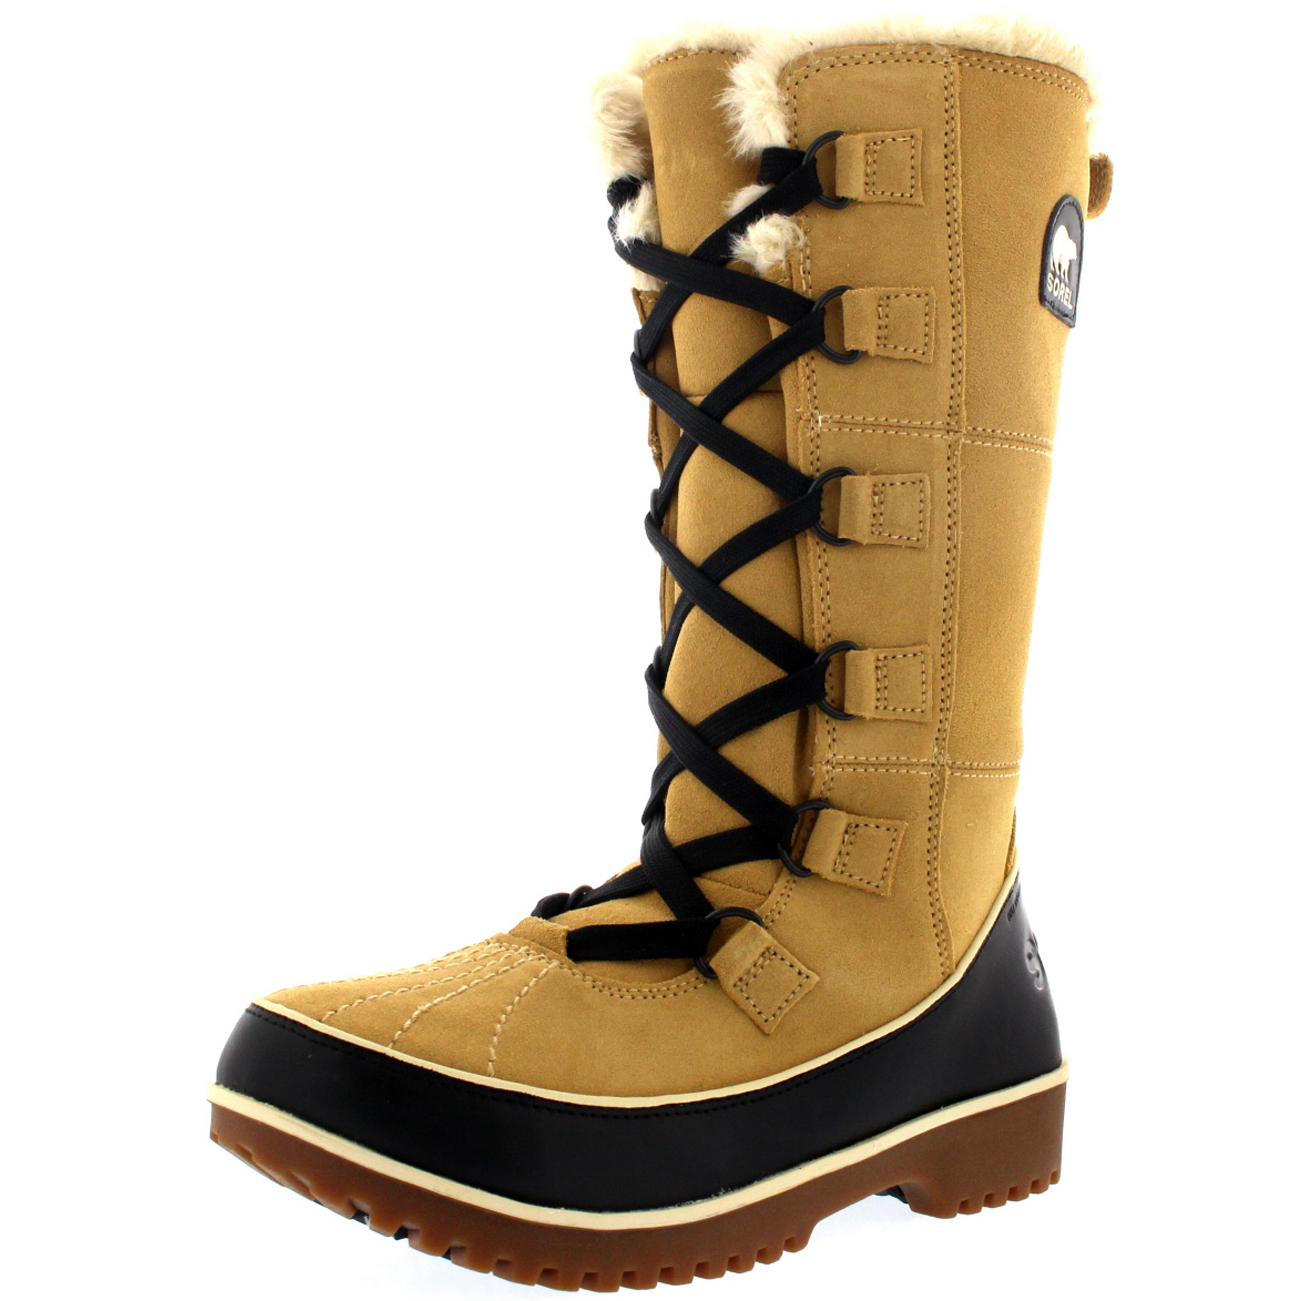 Suede Mid Calf Snow Boots quality free shipping AlcY4l